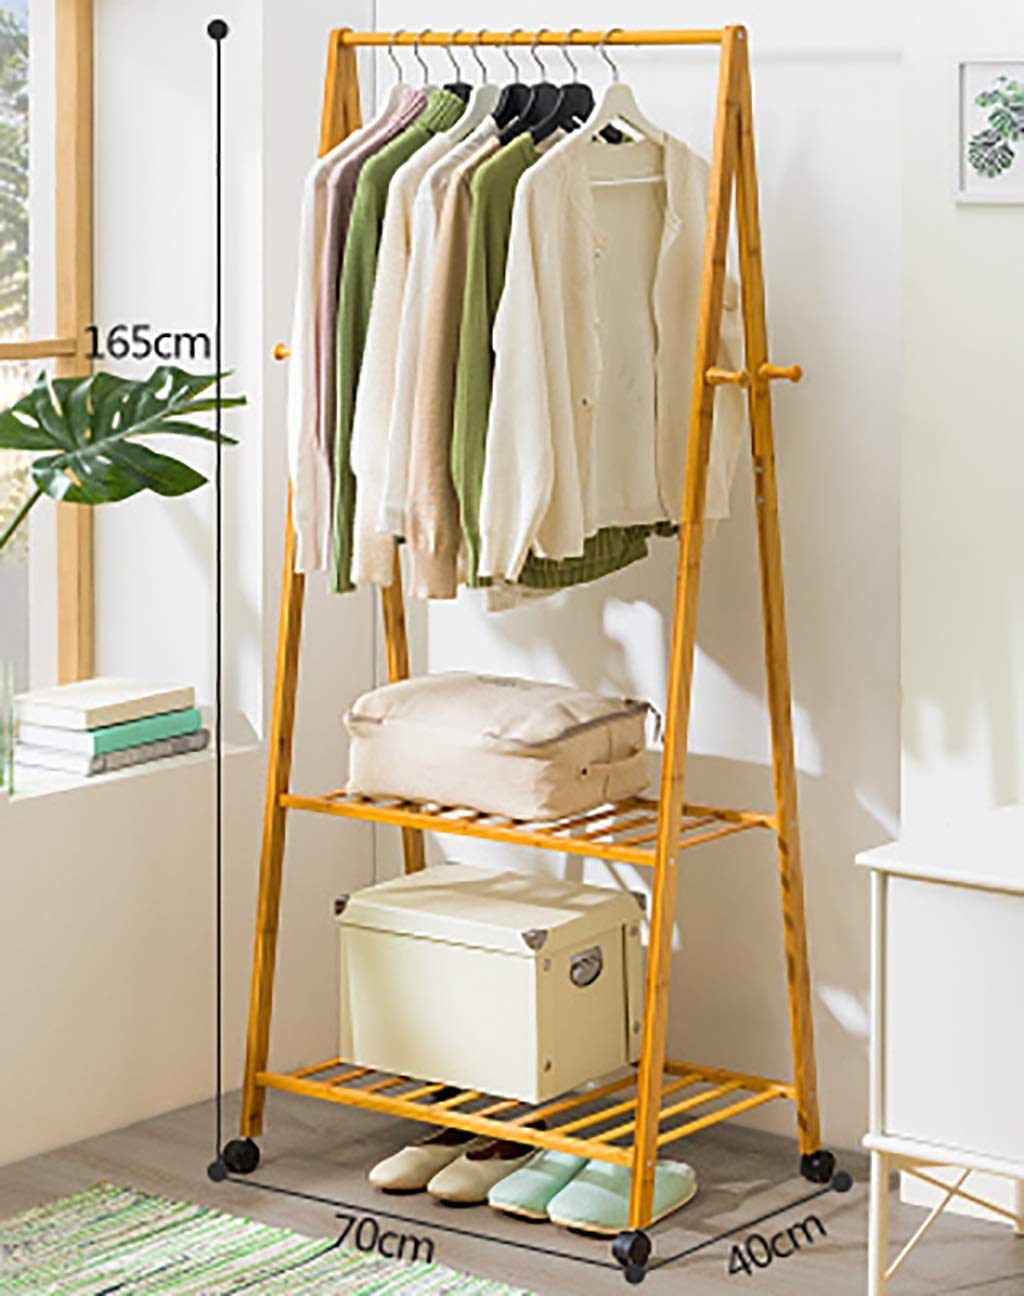 B 7040165cm Coat Stand,Housewares Standing Coat and Hat Rack Bamboo Wooden Creative Storage Shelves Hanger